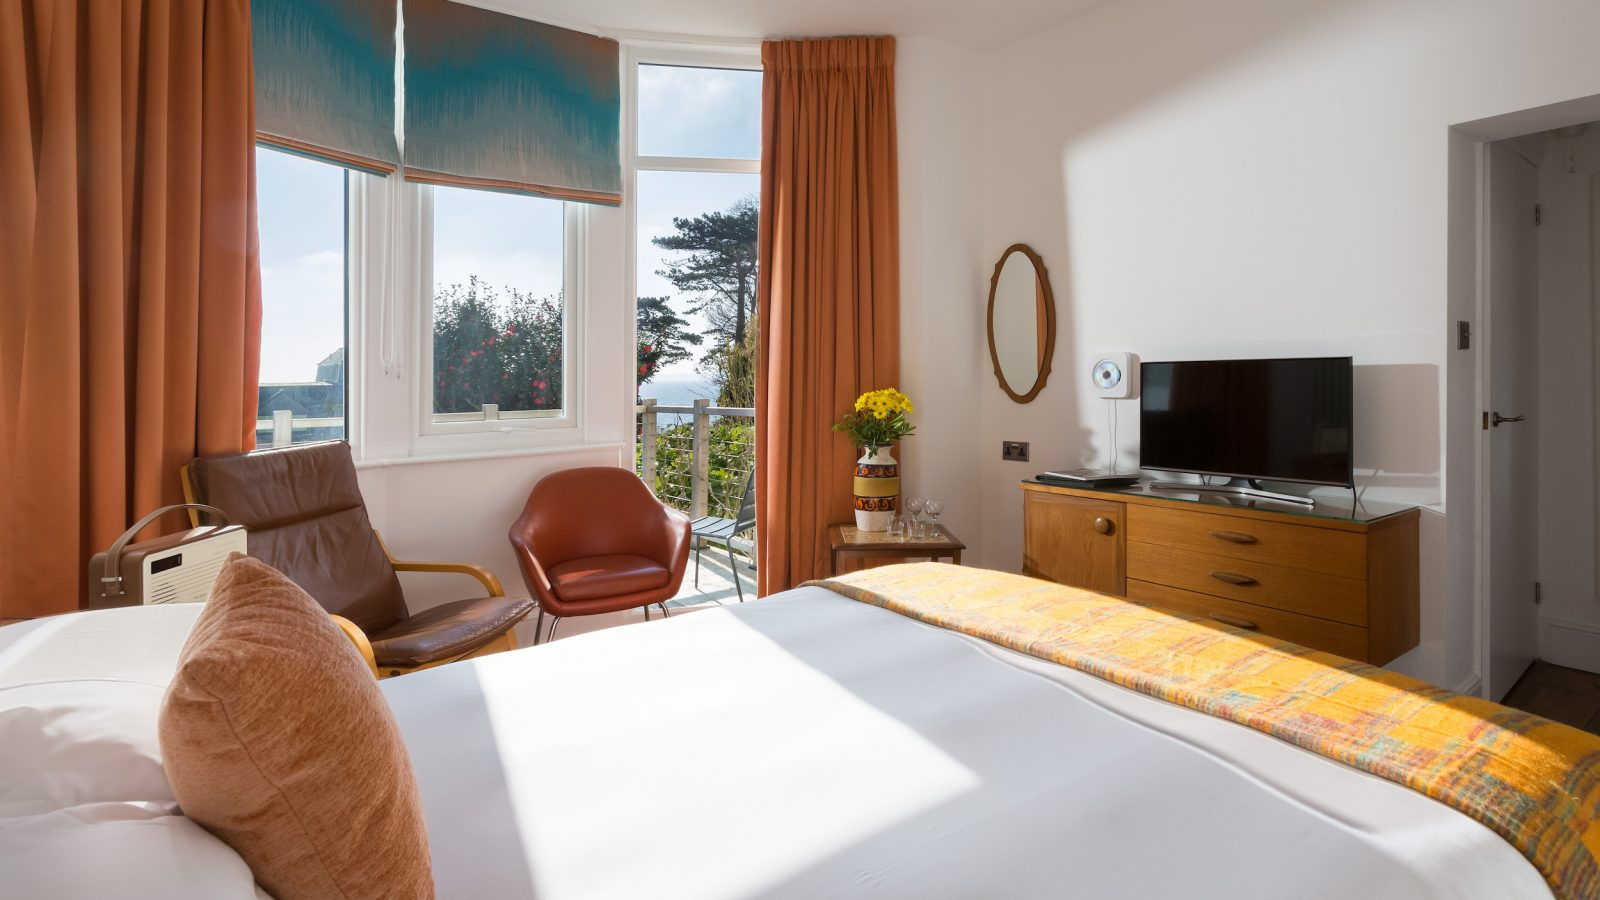 Prince, ground floor, dog friendly, king room with comfy seating and outside terrace